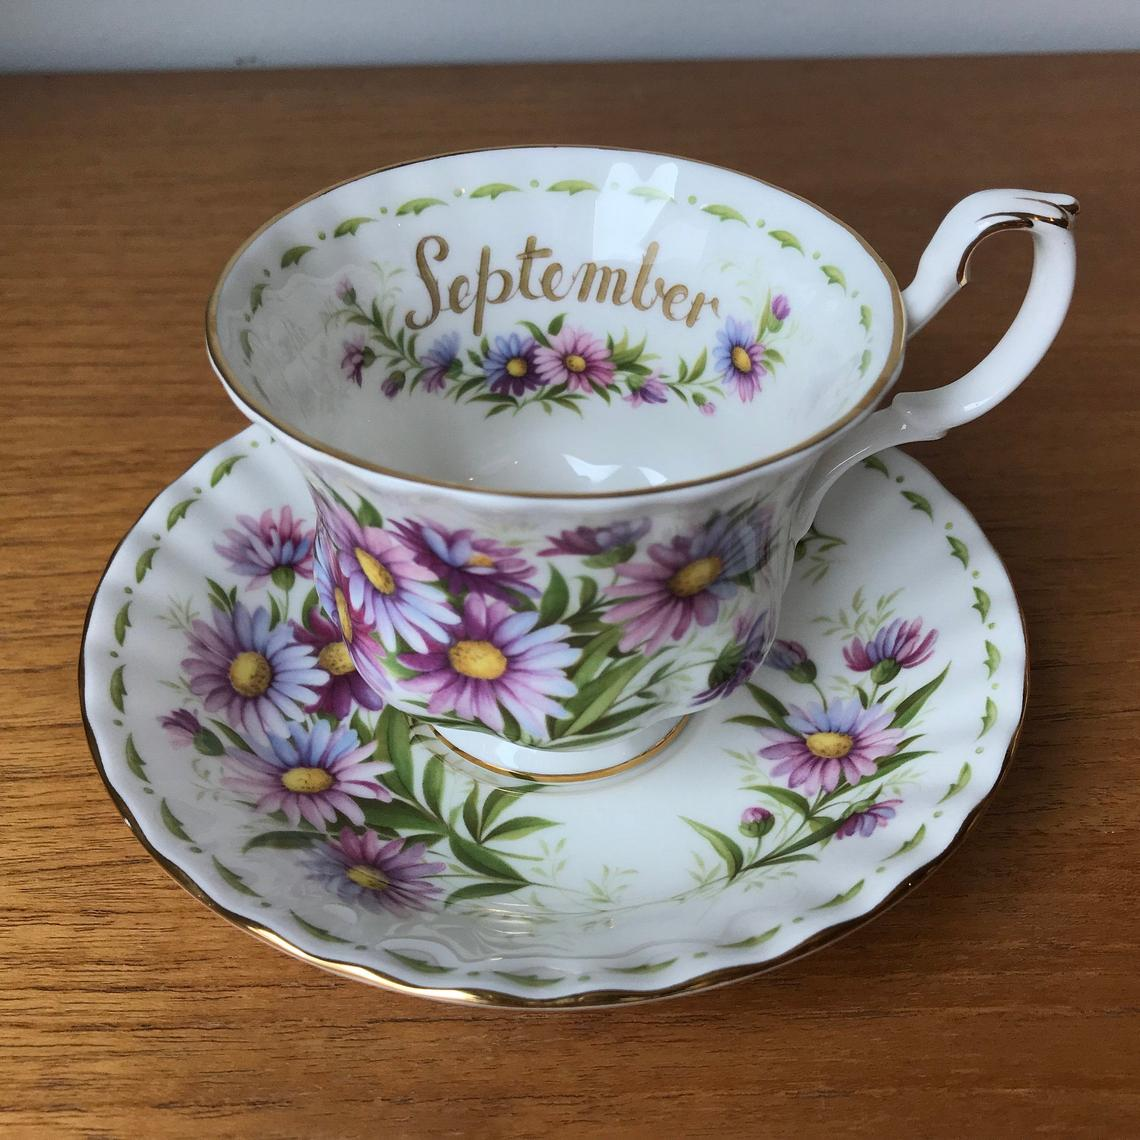 September Flower of the Month Series Royal Albert Michaelmas Daisy Vintage Teacup and Saucer, Purple English China Tea Cup, and Saucer